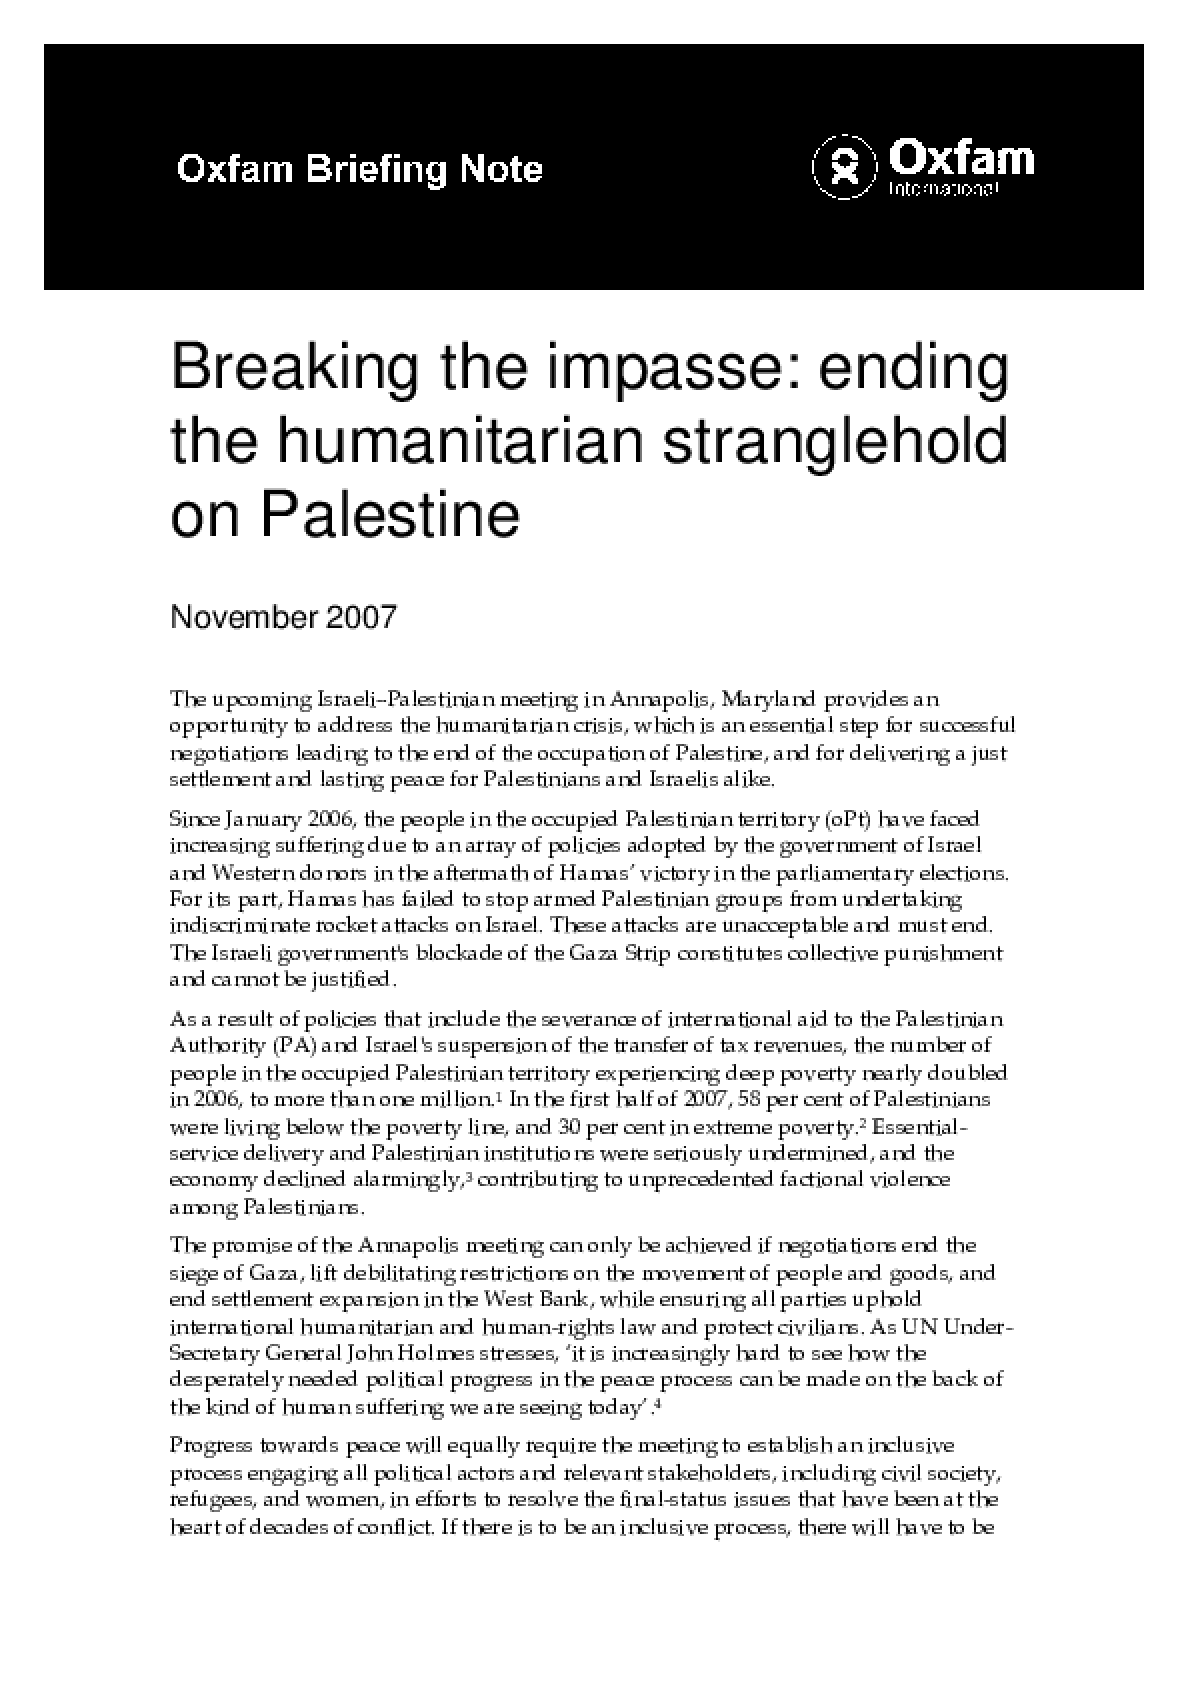 Breaking the Impasse: Ending the humanitarian stranglehold on Palestine